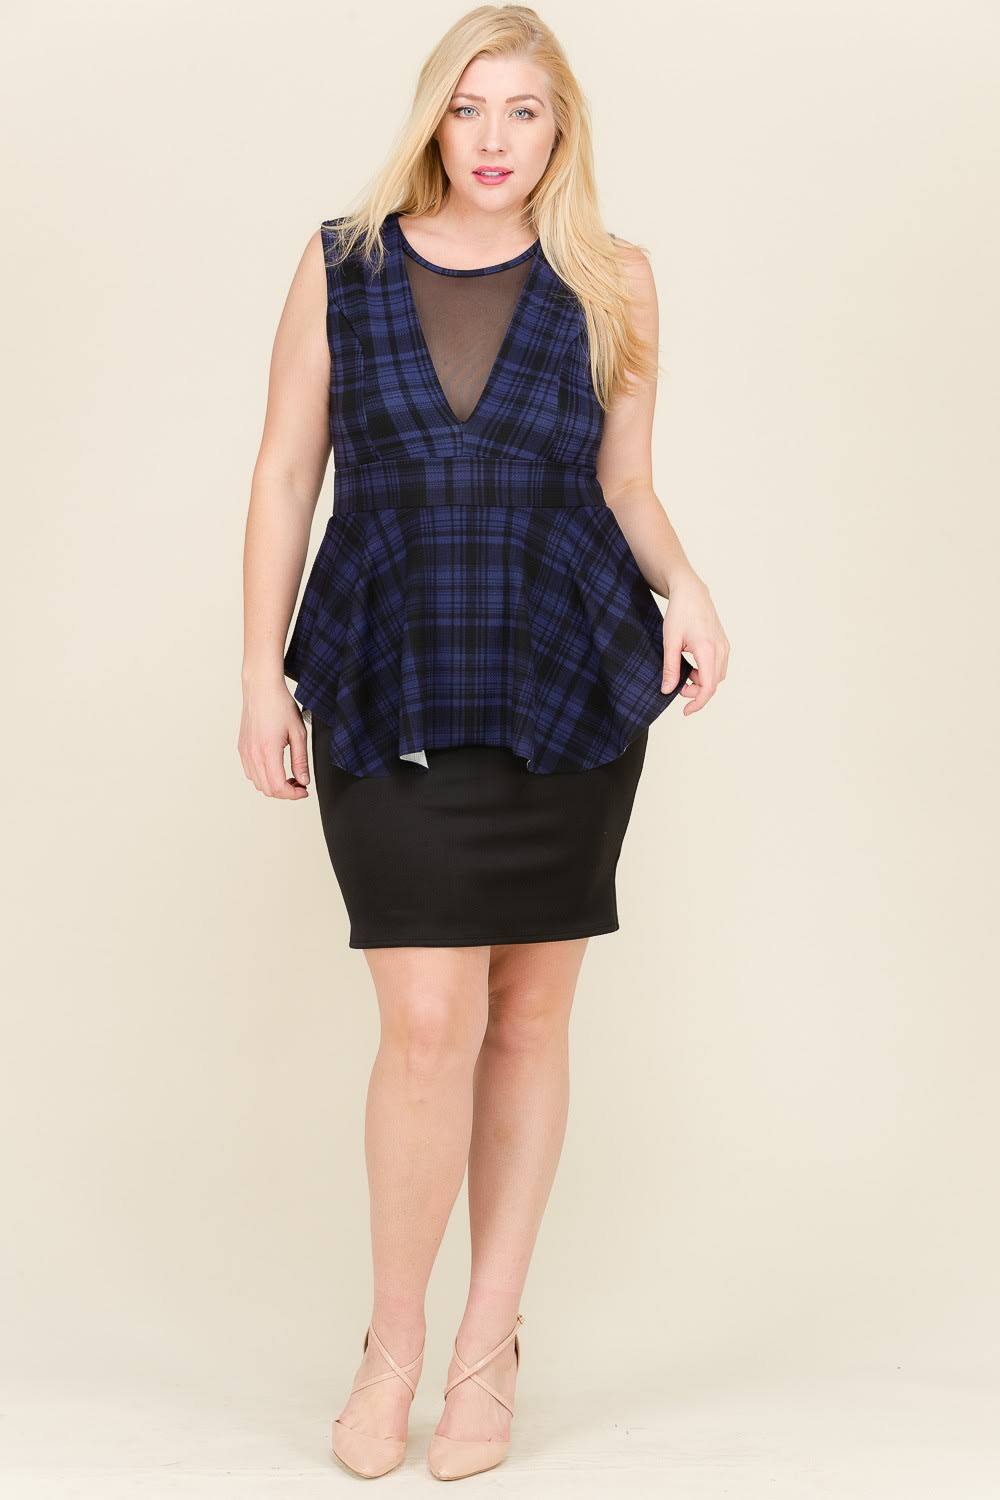 At The Office Dress - Black / Navy - Front